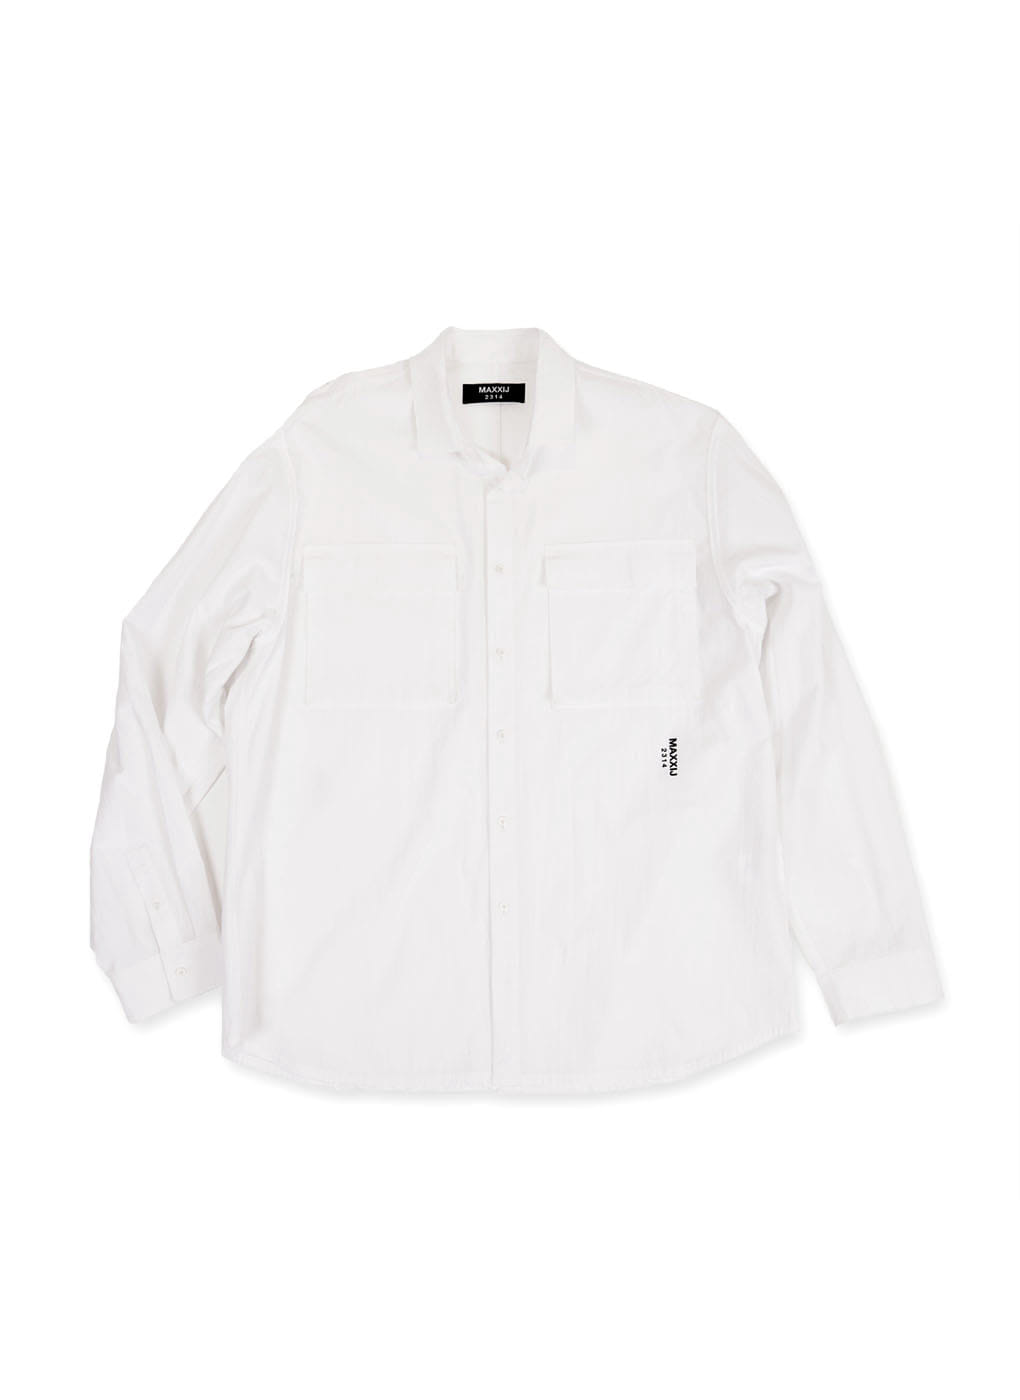 White Military Button Down Oxford Shirt